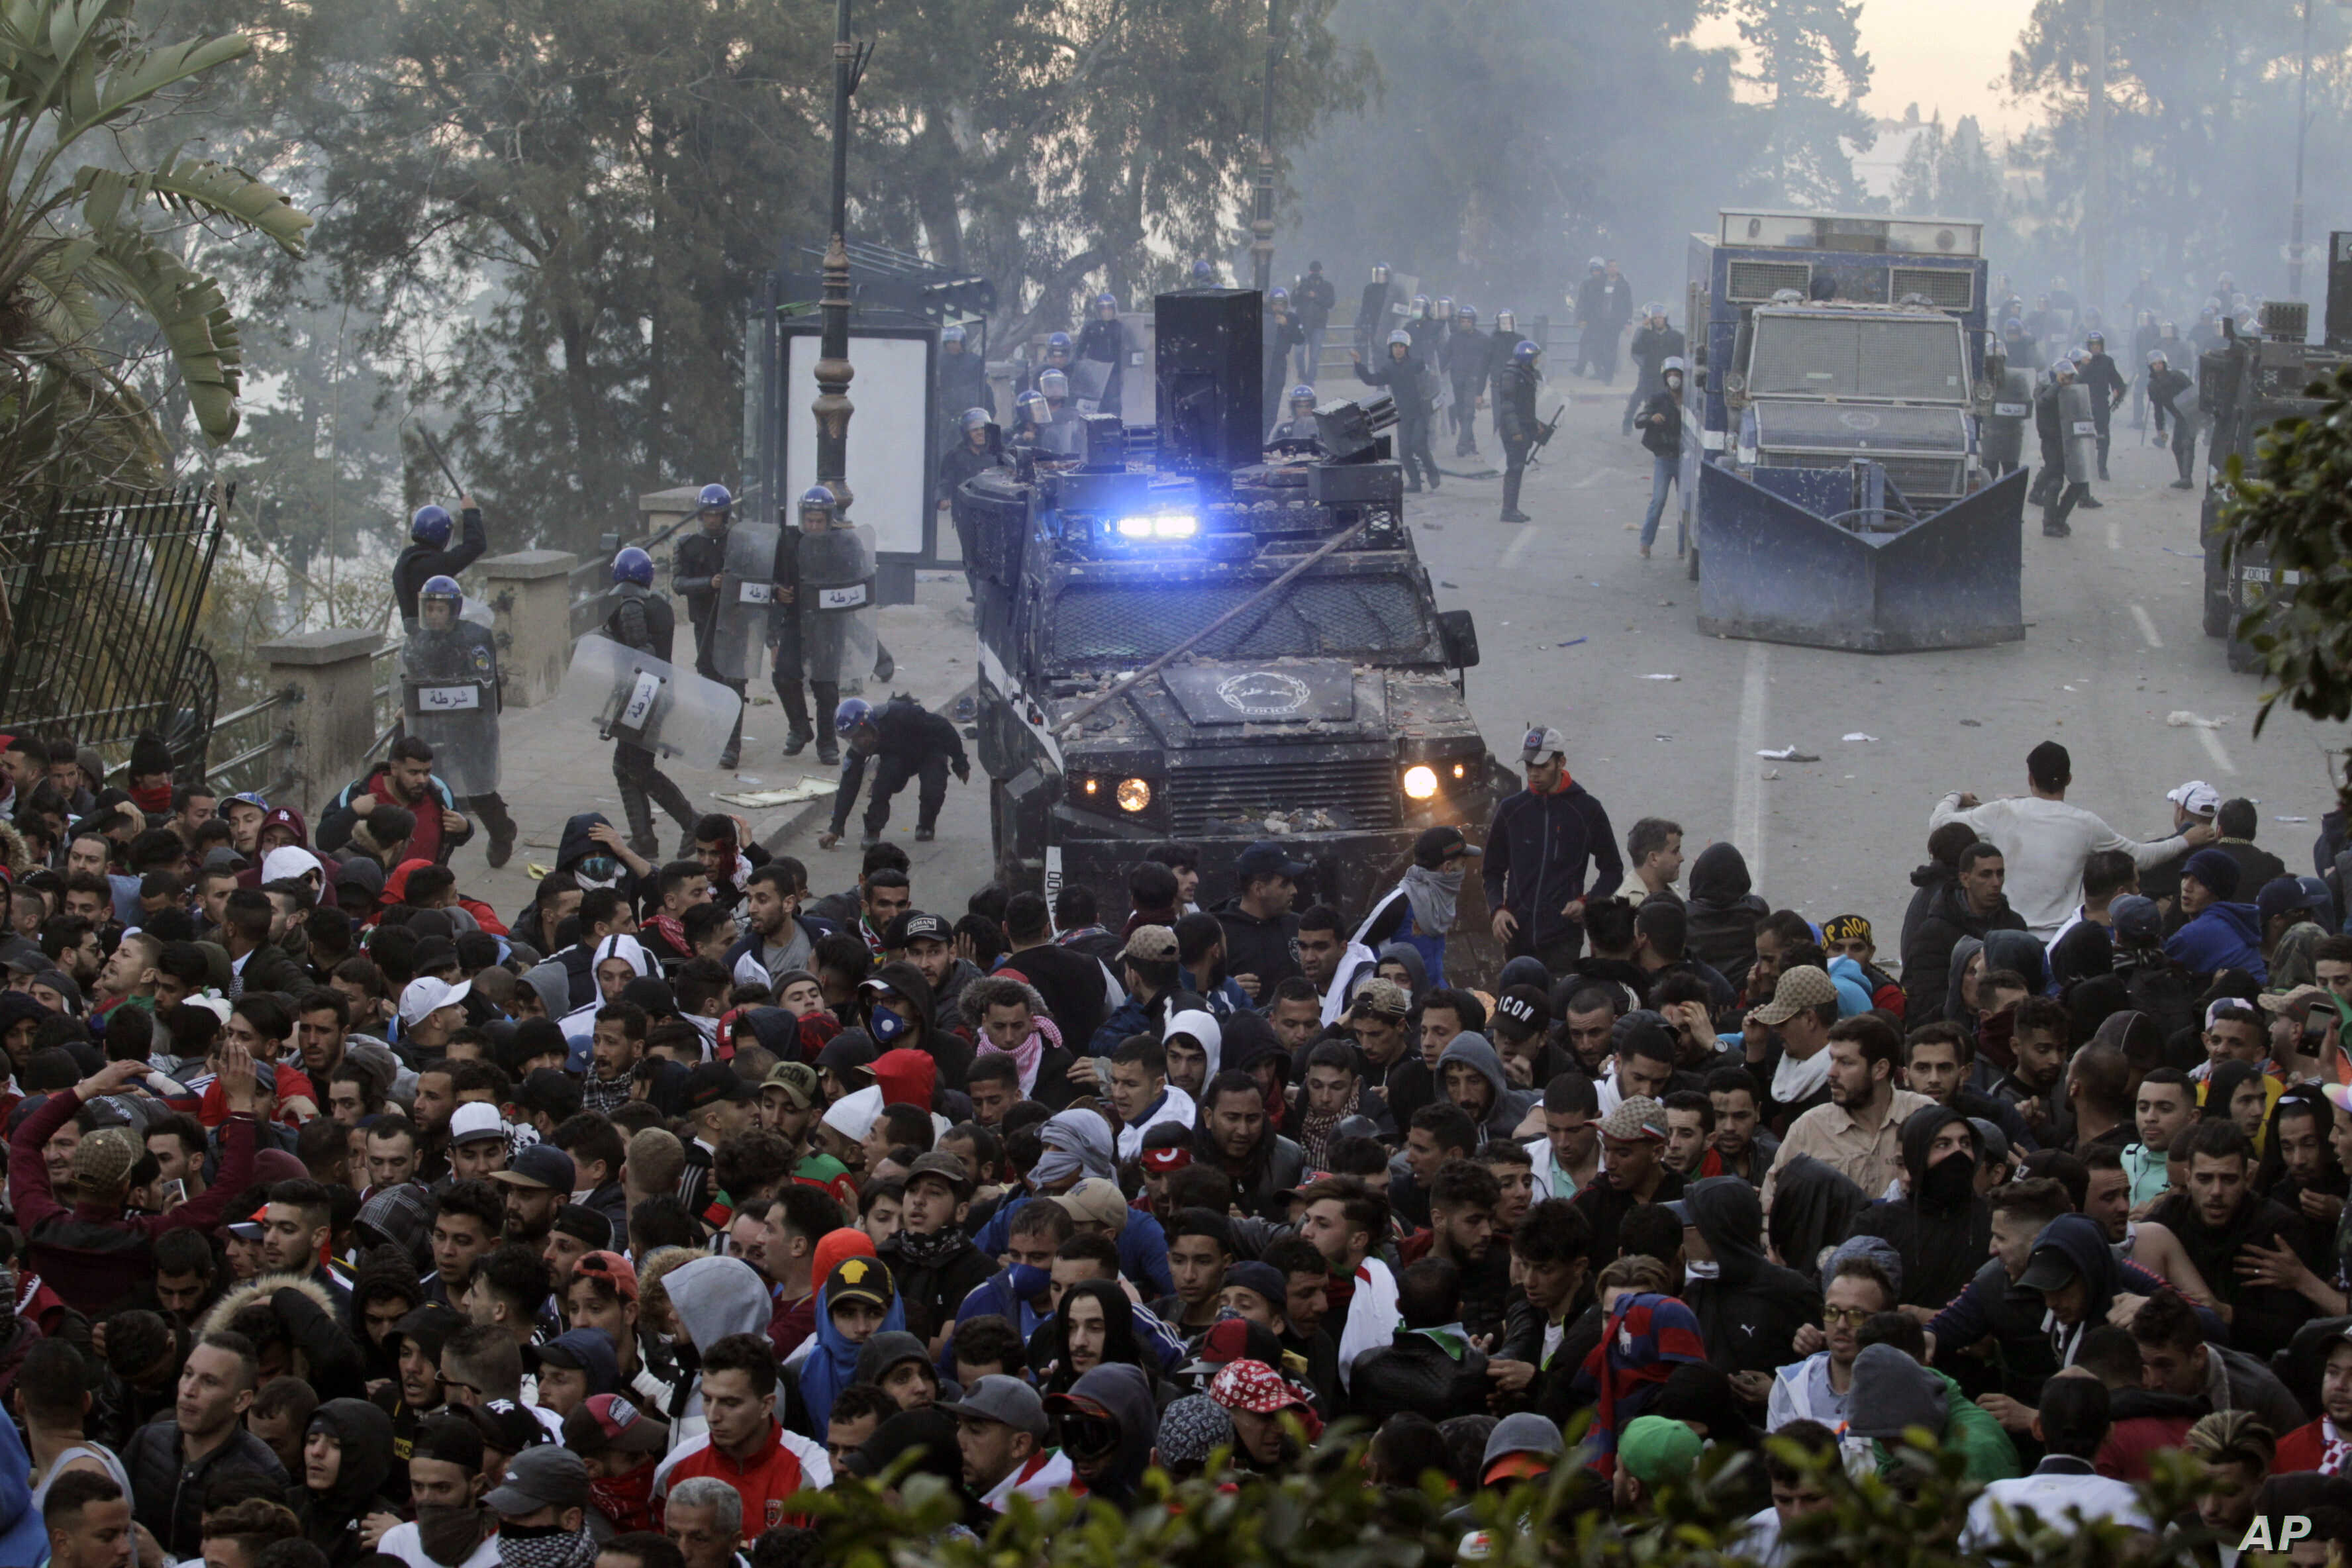 Protesters clash with police in the streets of Algiers, Algeria, during a demonstration denouncing President Abdelaziz Bouteflika's bid for a fifth term, March 1, 2019.